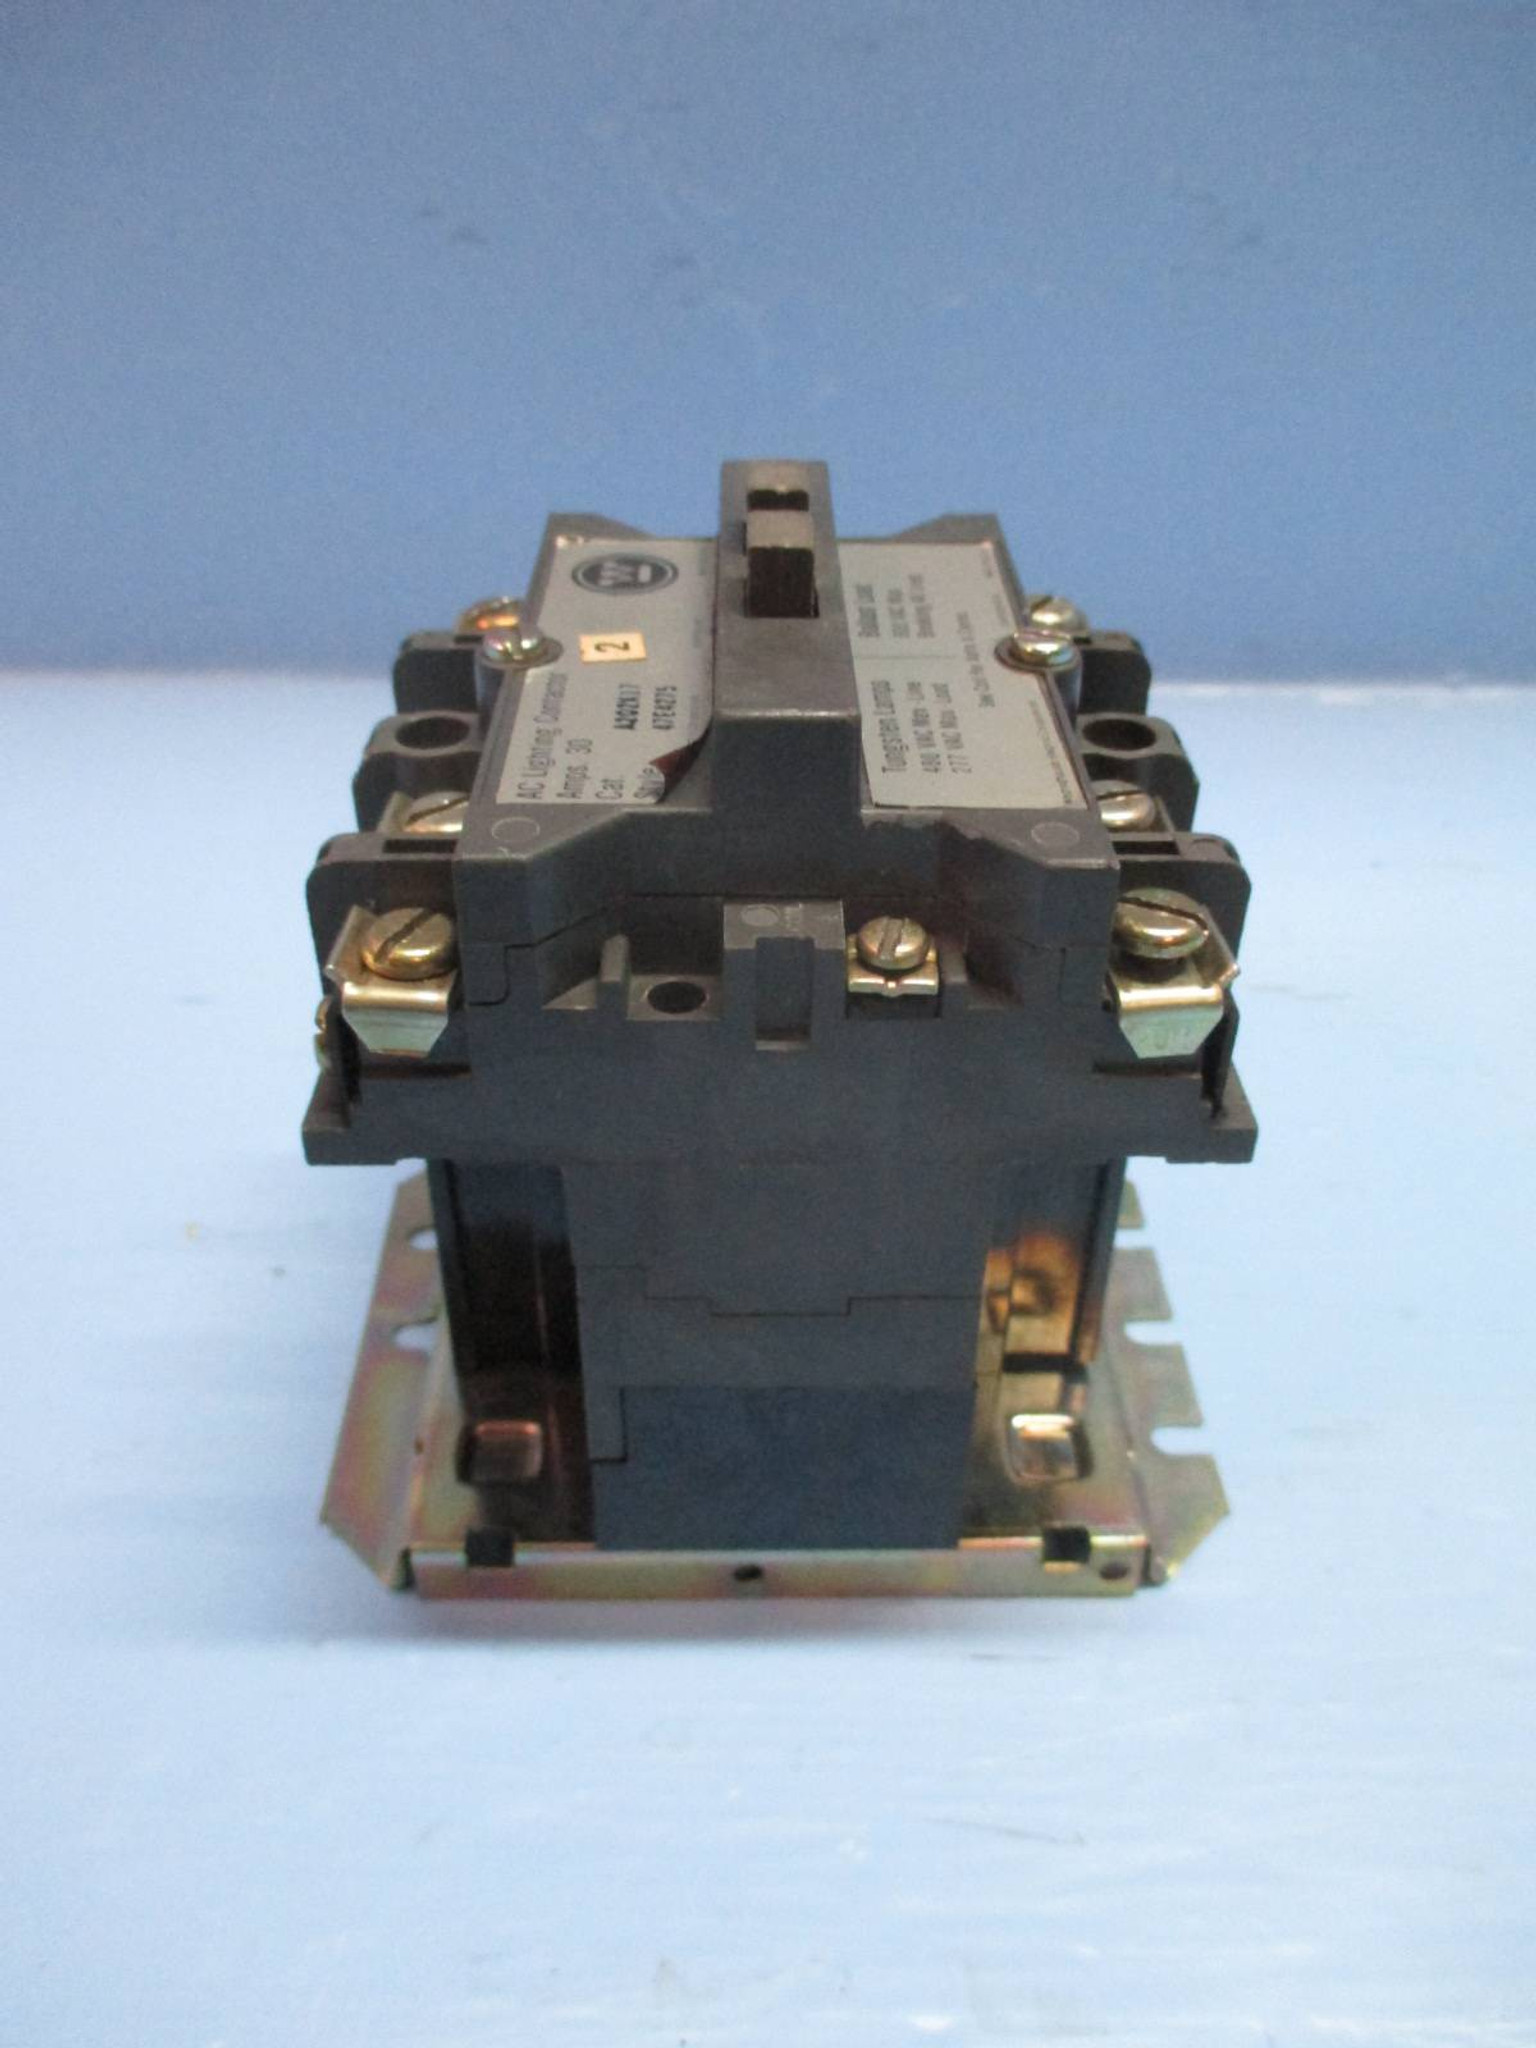 Westinghouse A202K17 30 Amp AC Lighting Contactor 277V Coil 600 Vac on